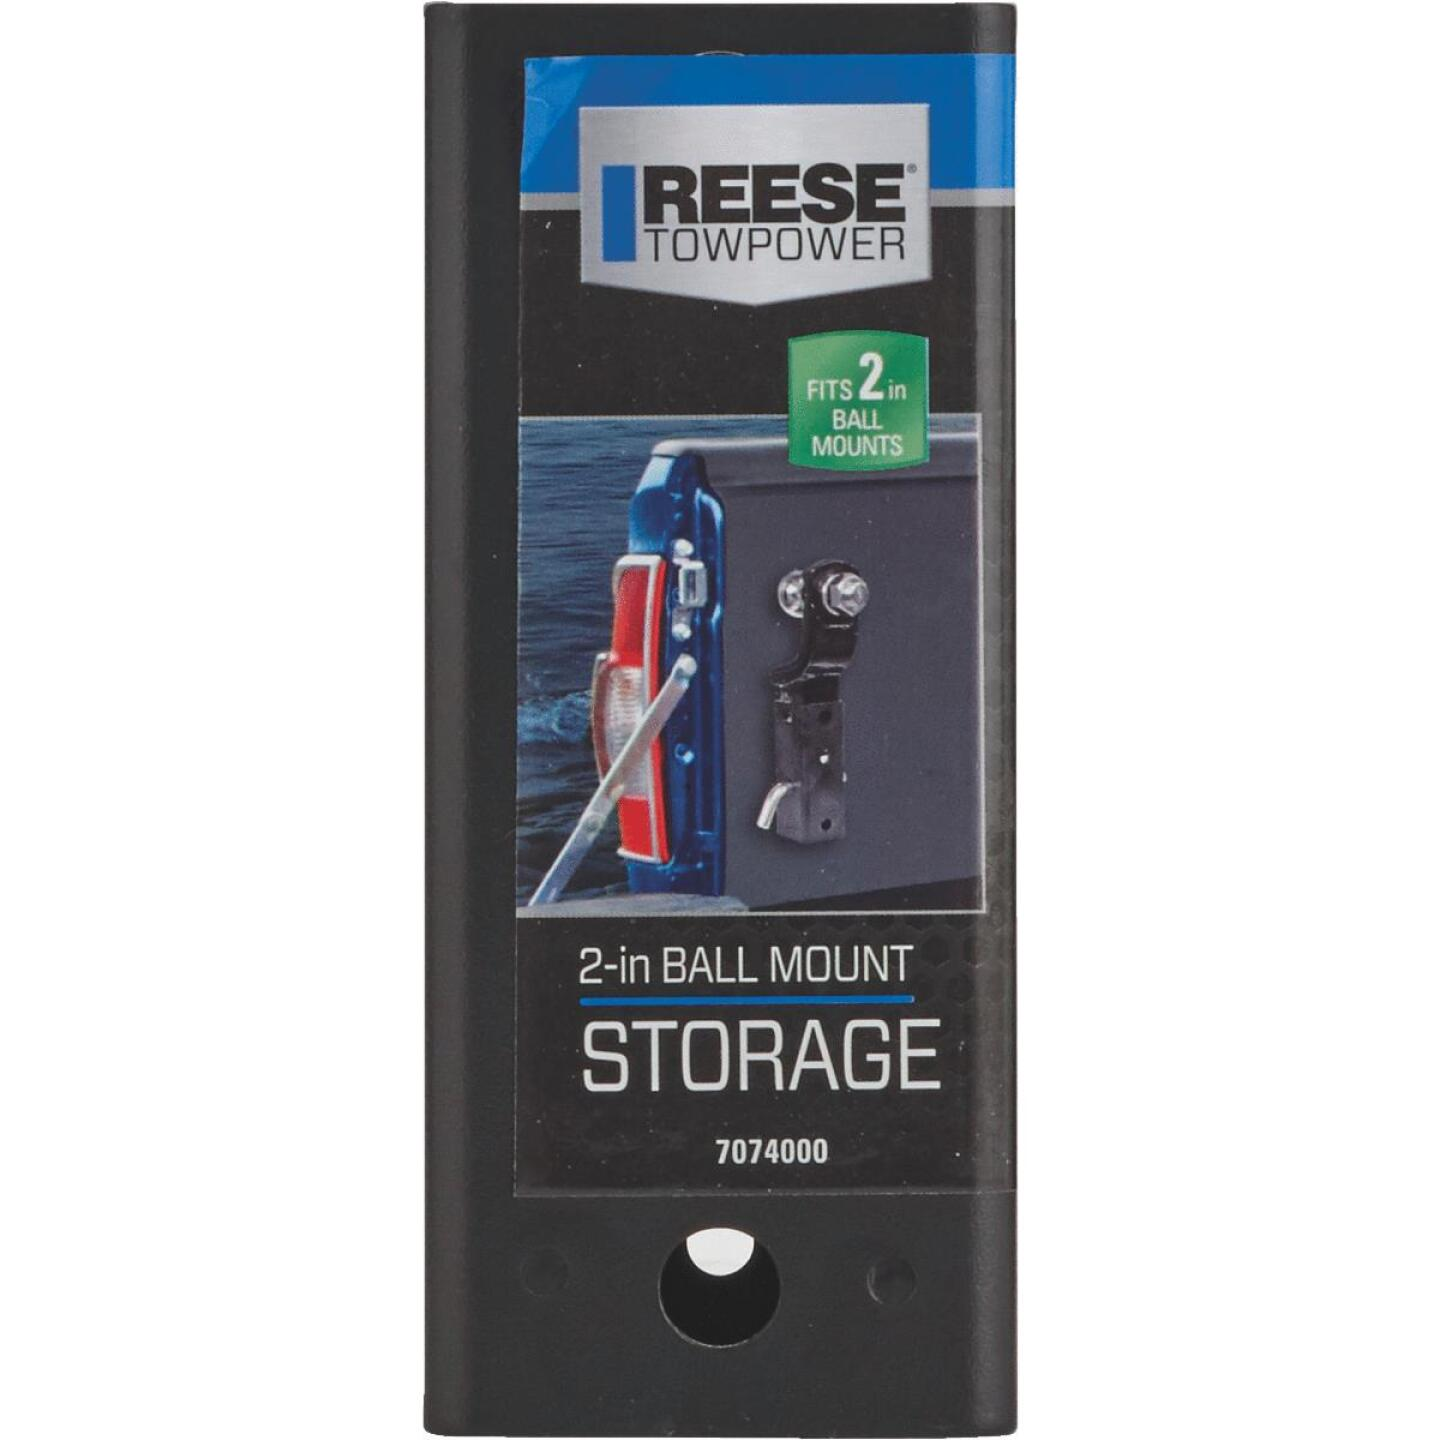 Reese Towpower 2 In. Hitch Ball Storage Image 2